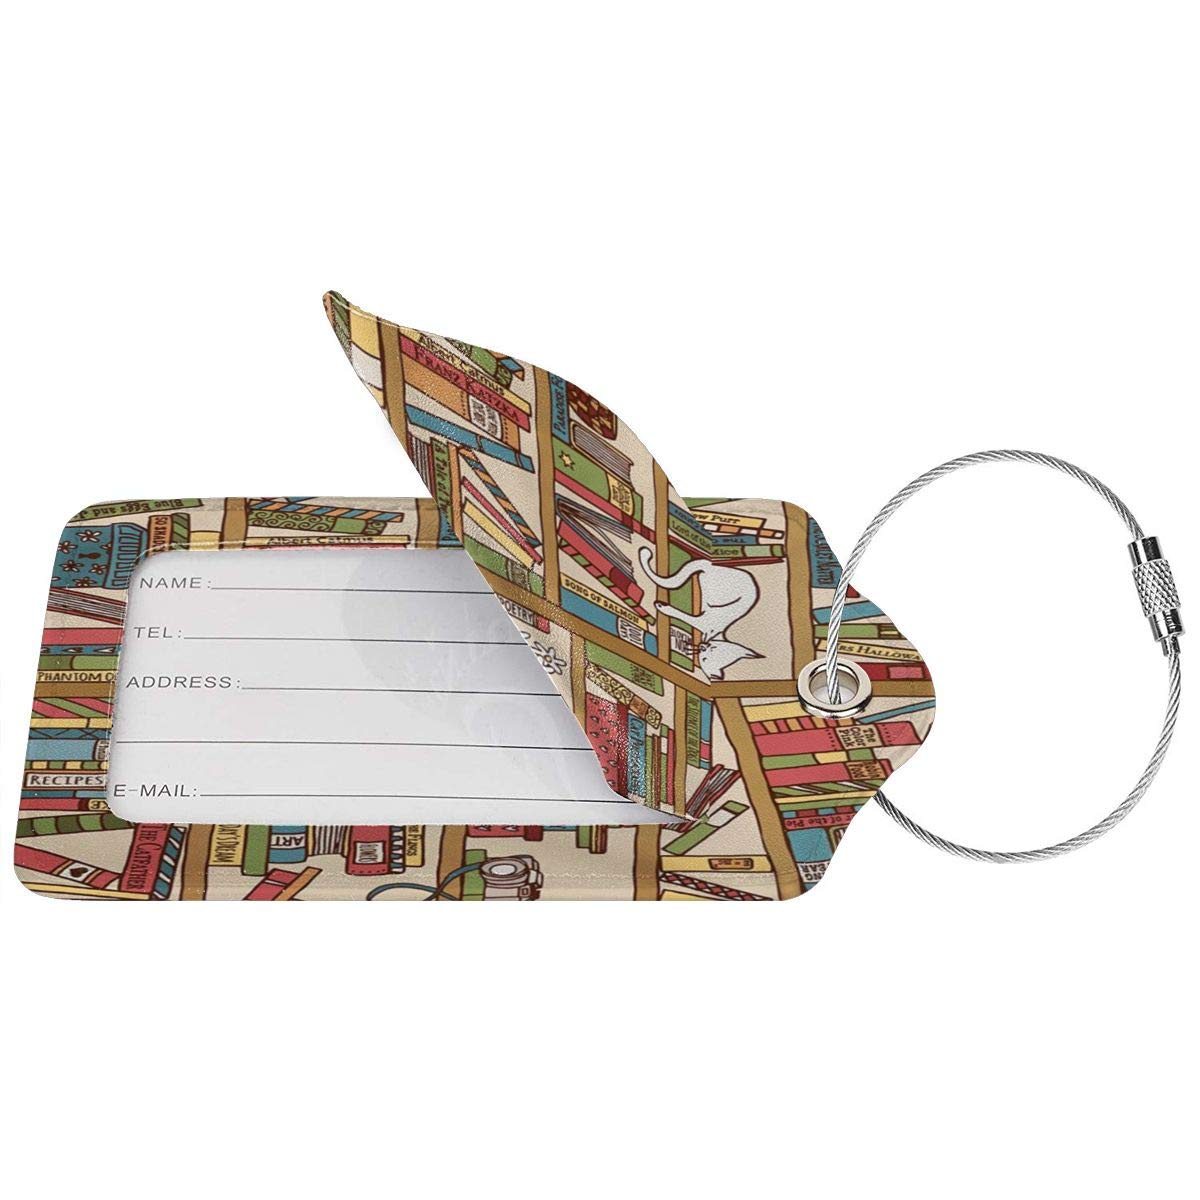 Nerd Book Lover Kitty Sleeping Over Bookshelf In Library Luggage Tag Label Travel Bag Label With Privacy Cover Luggage Tag Leather Personalized Suitcase Tag Travel Accessories